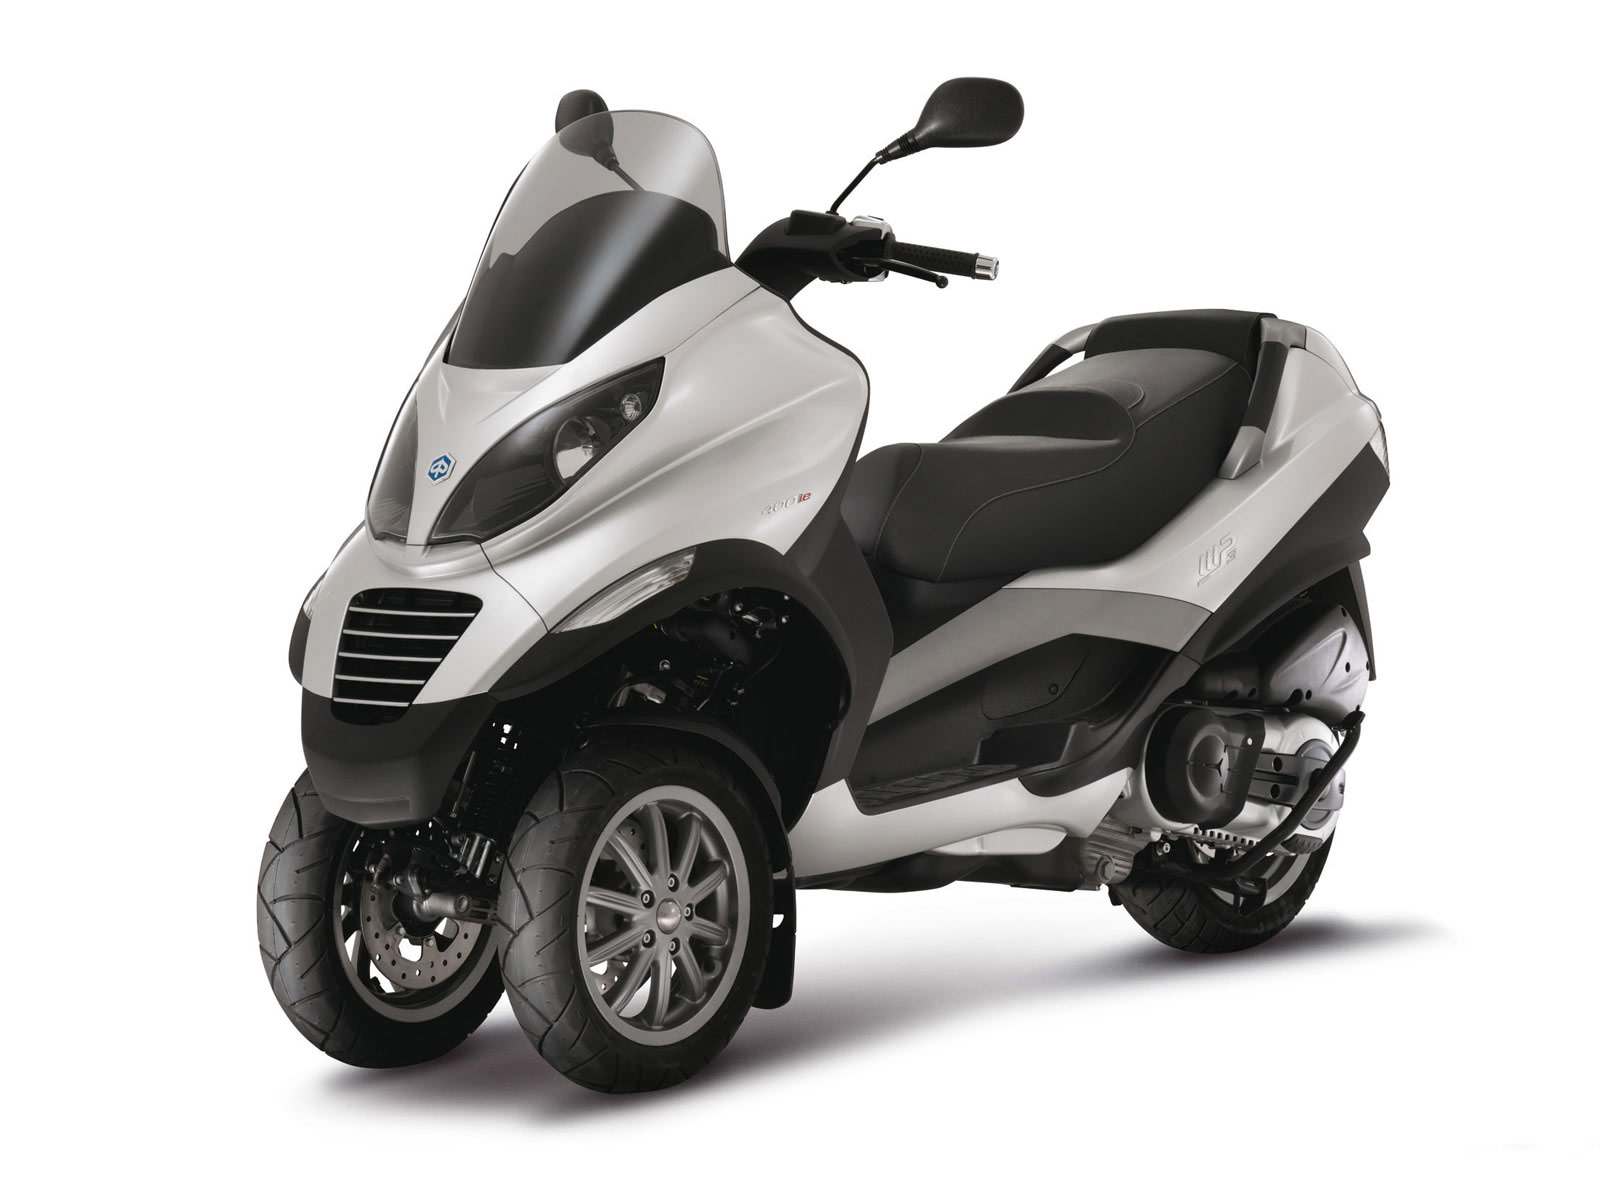 2008 piaggio mp3 400ie scooter pictures specifications. Black Bedroom Furniture Sets. Home Design Ideas